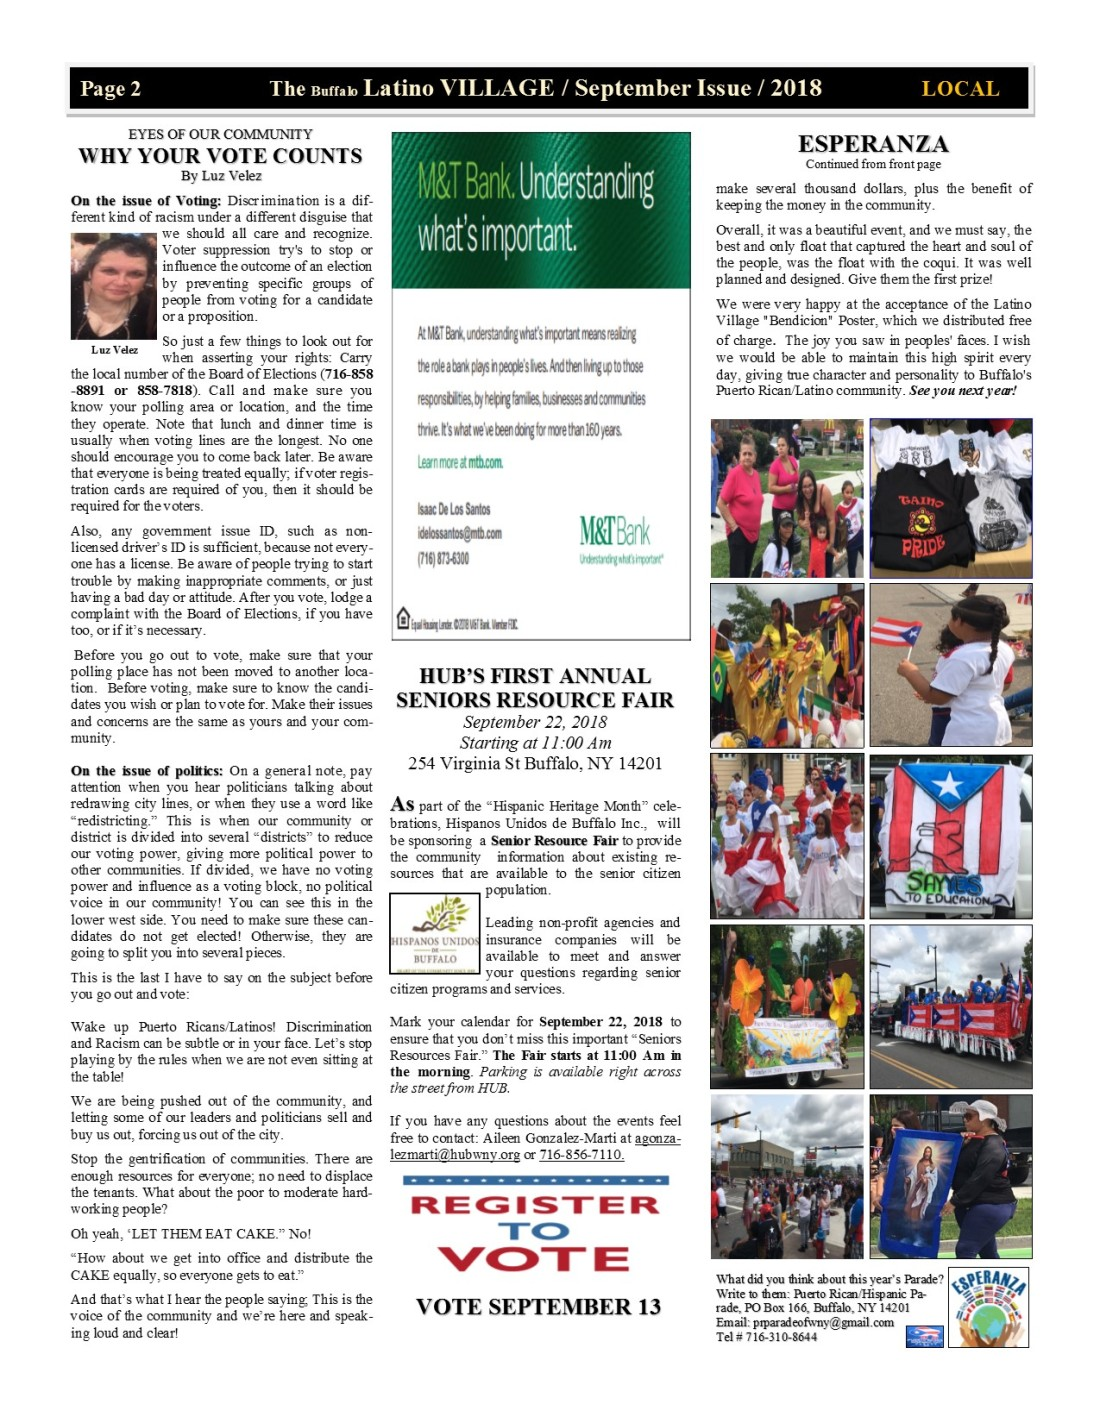 Page 2 Latino Village Newslette September Issue 2018 No. 11